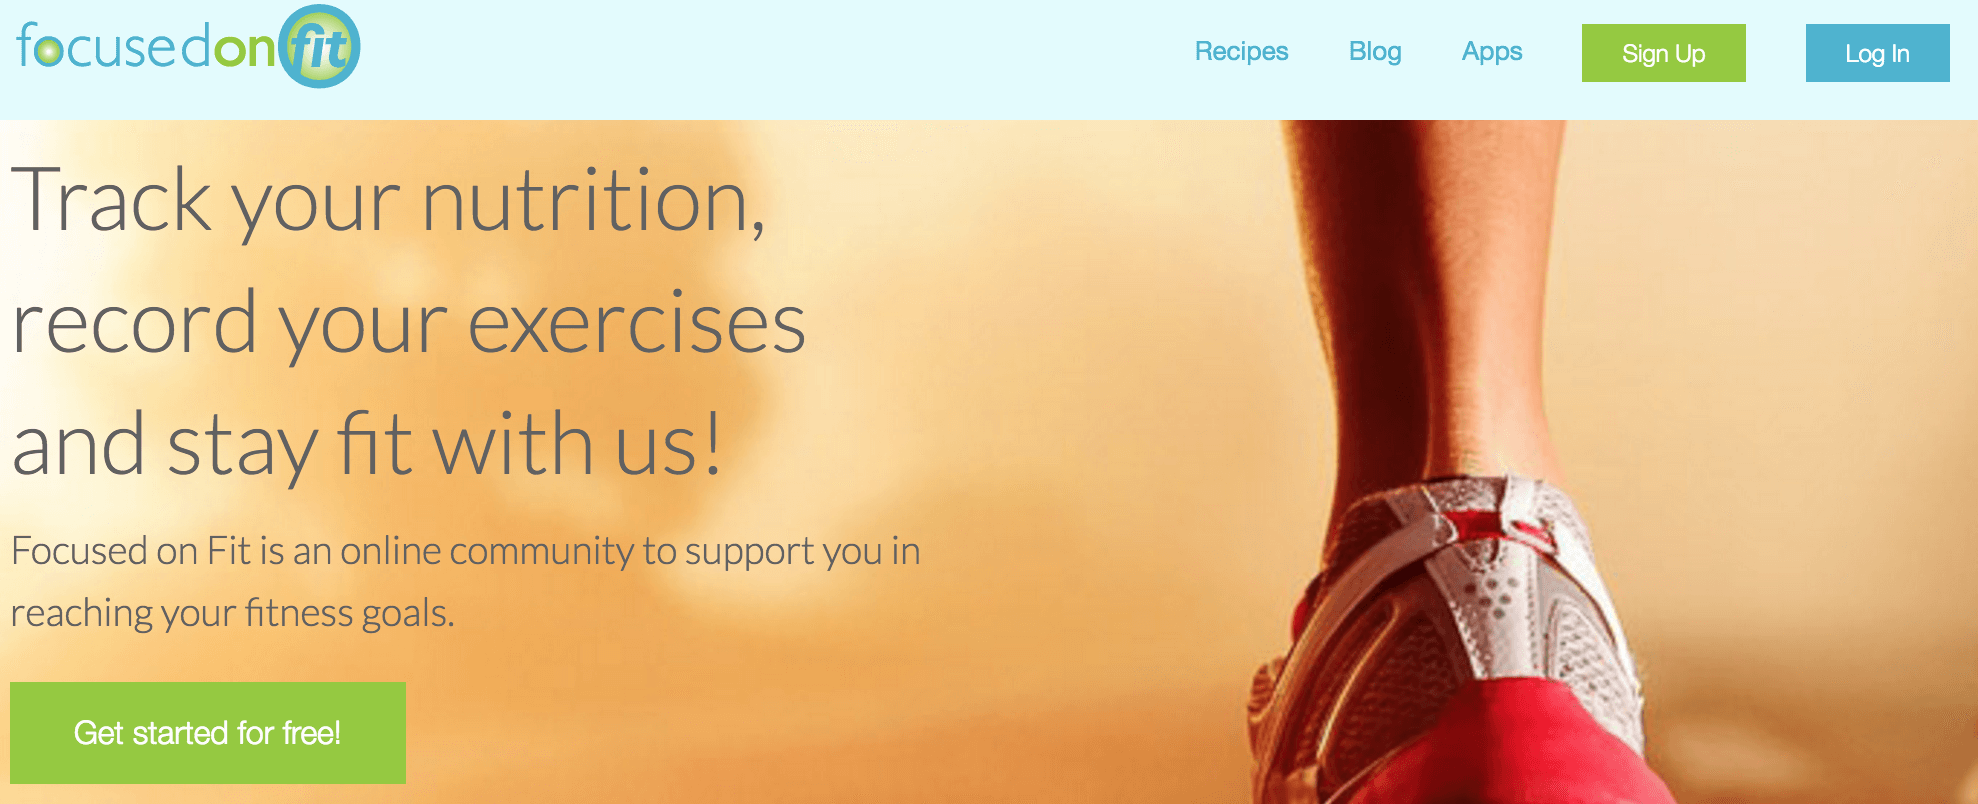 The Focused On Fit homepage.